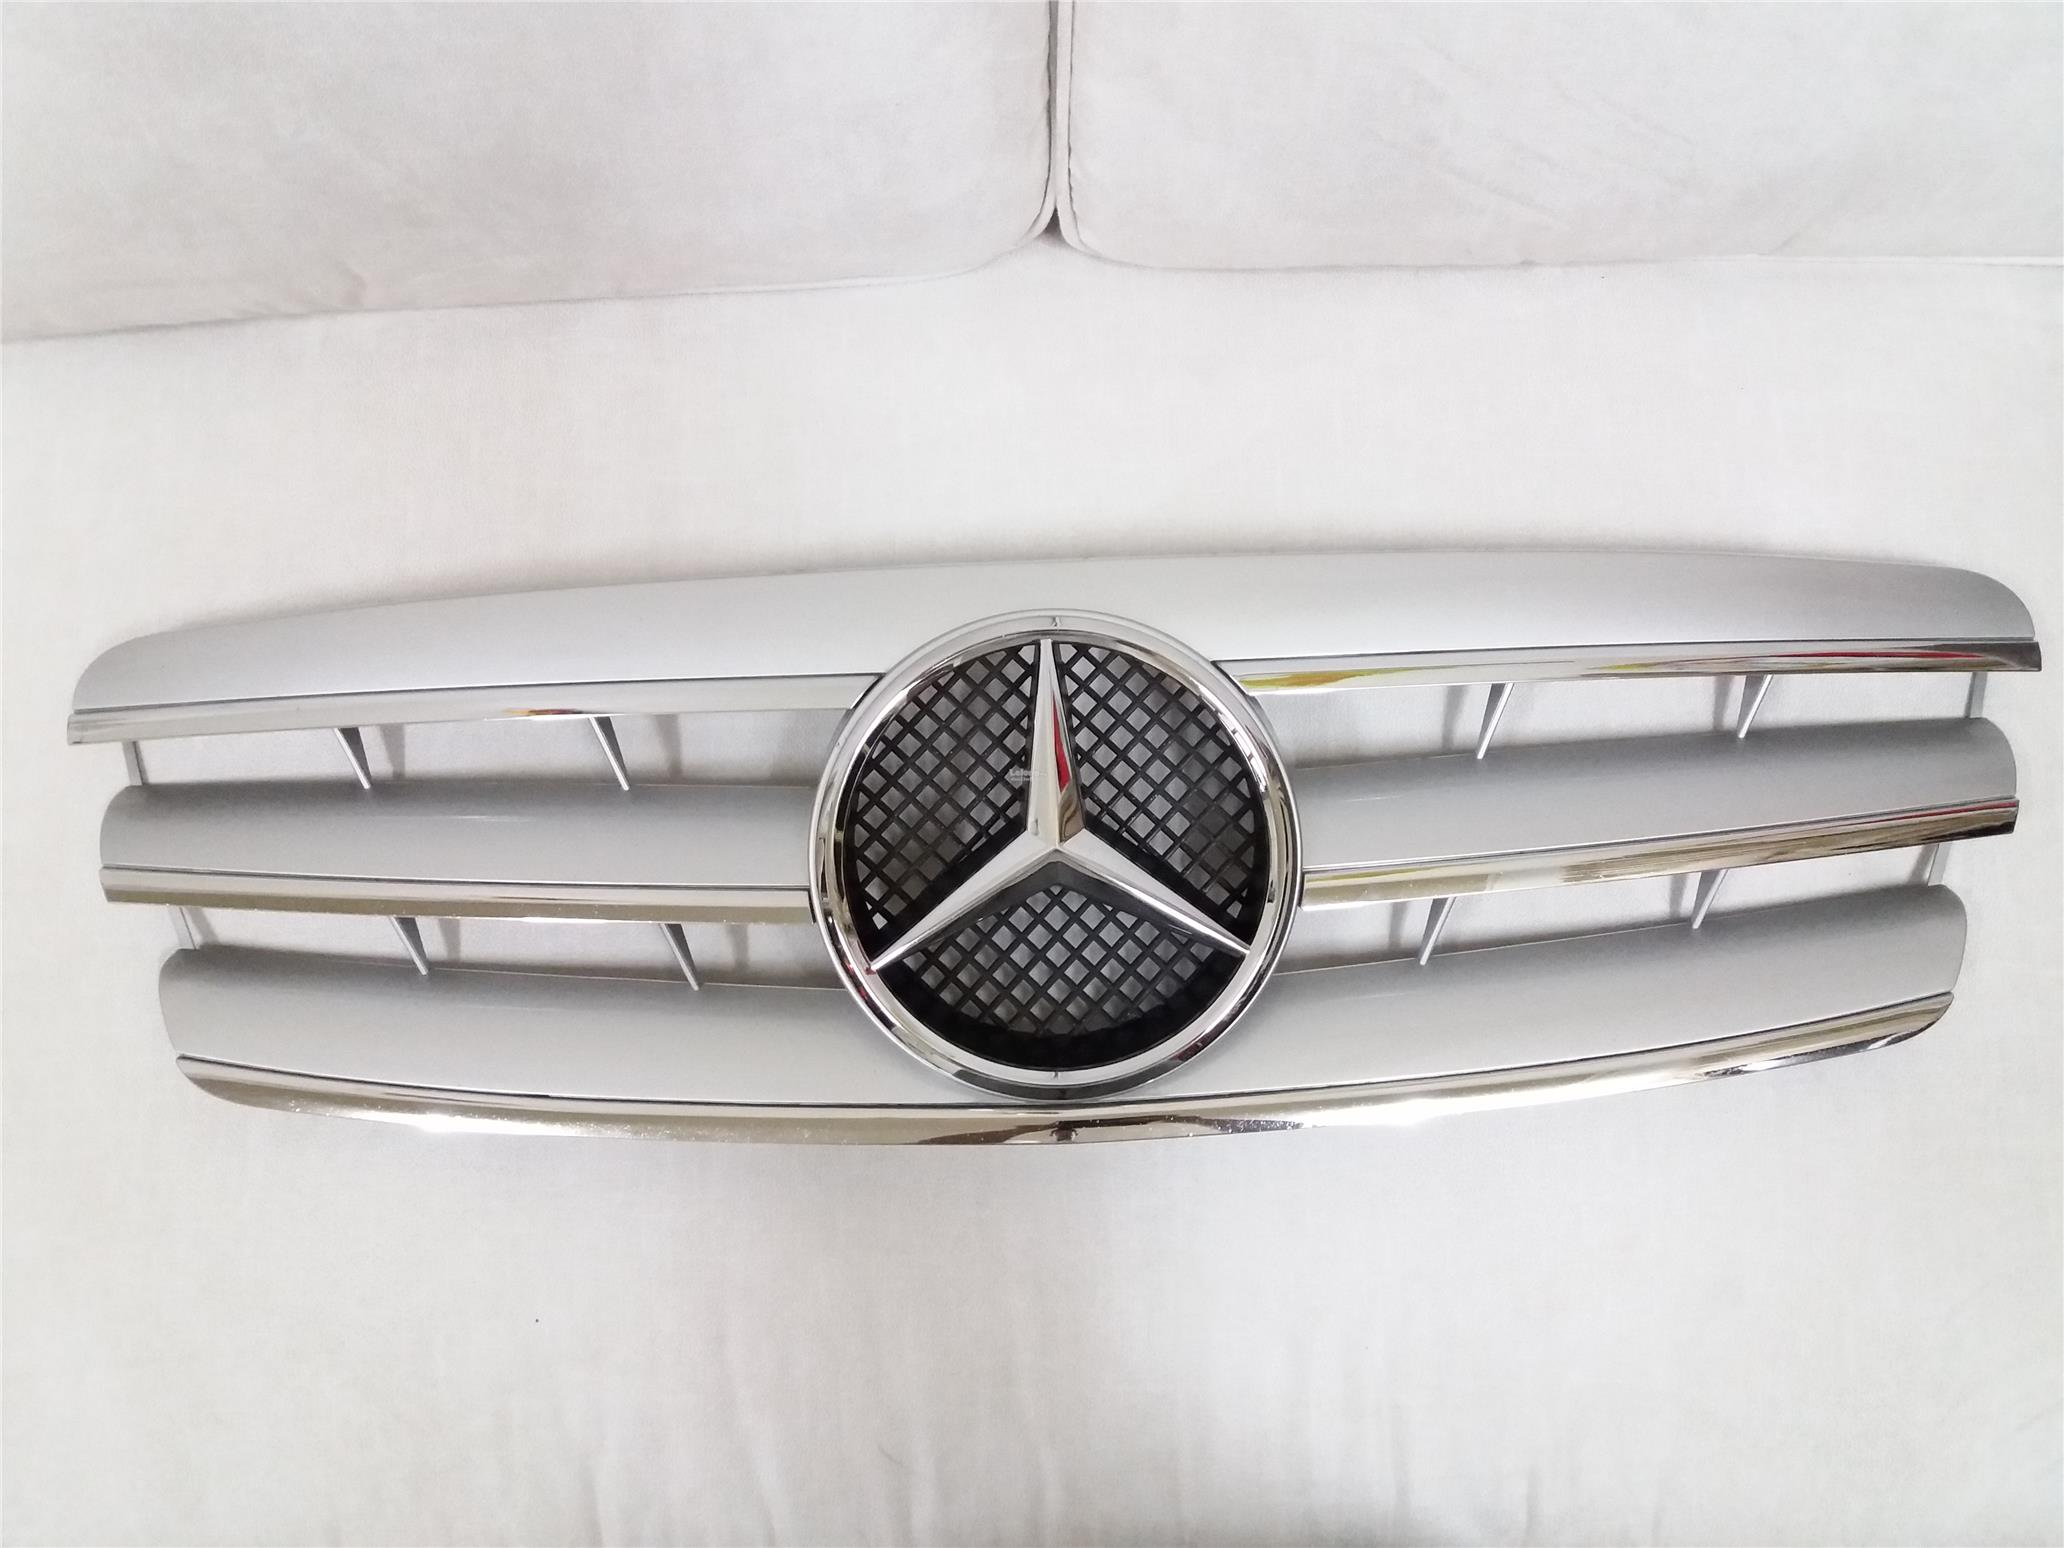 Mercedes benz w203 00 06 front grill end 5 1 2017 9 15 pm for Mercedes benz front emblem